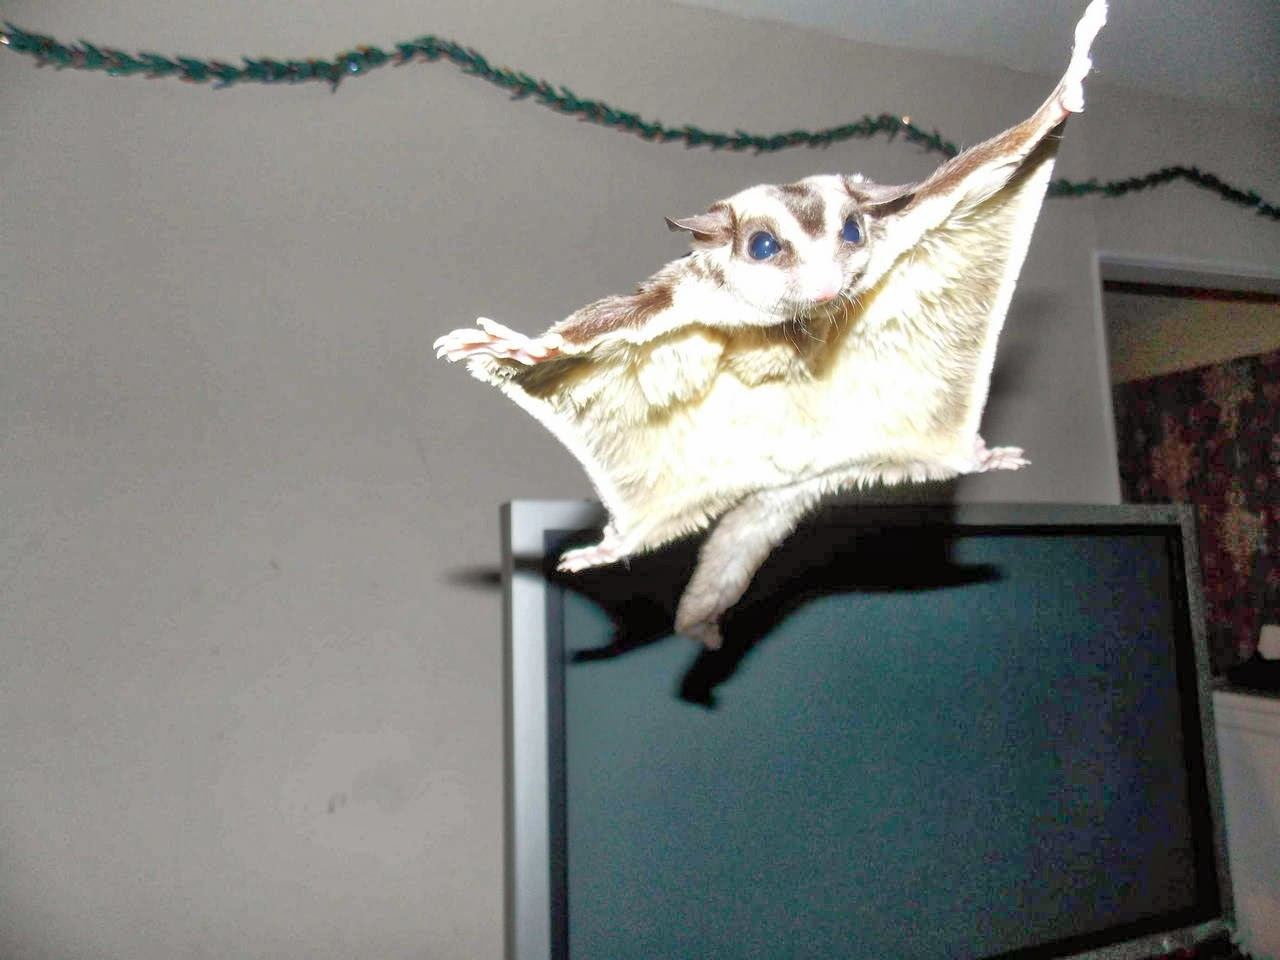 Funny animals of the week - 21 March 2014 (40 pics), funny animal pictures, flying sugar glider